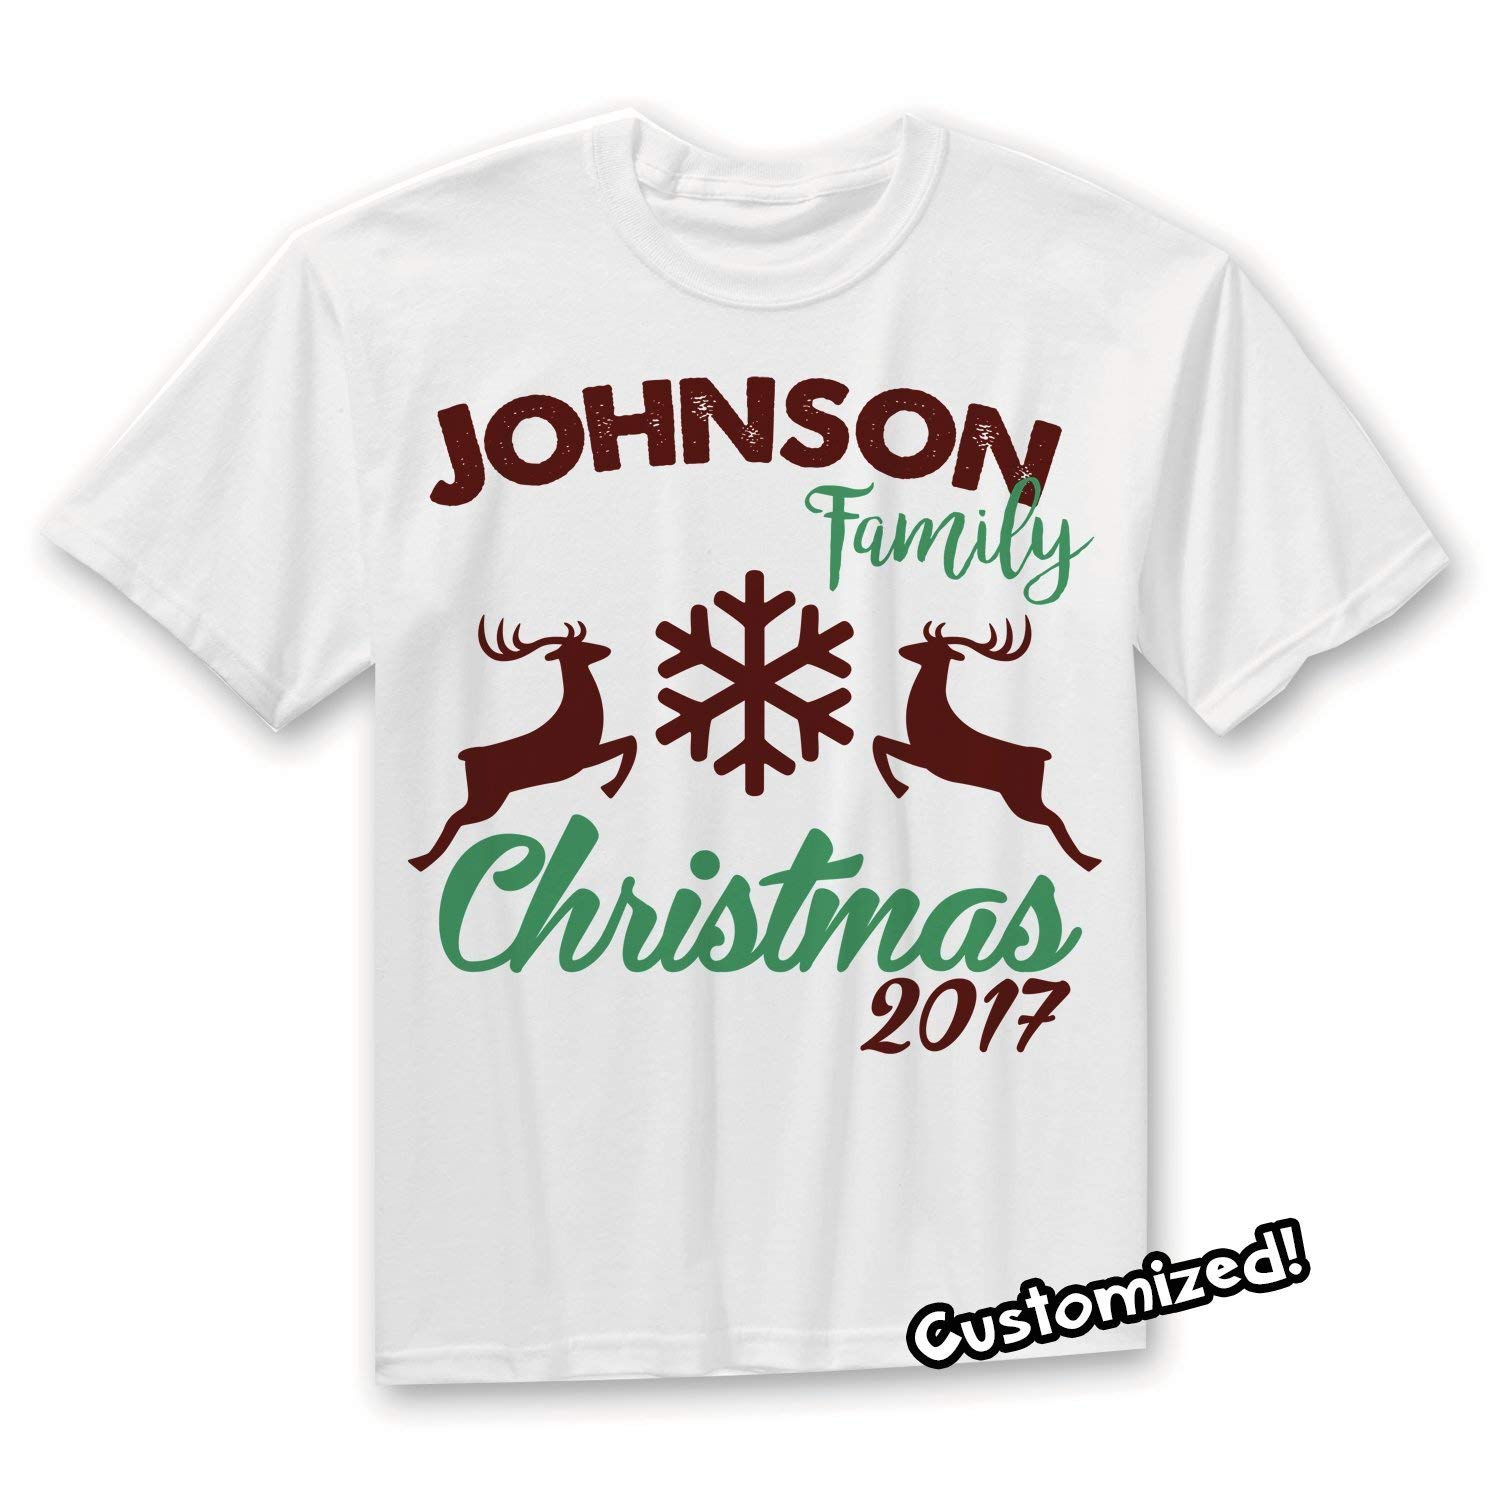 Personalized Family name New Year family shirts Christmas celebration family t-shirts Best Christmas Ever family shirts